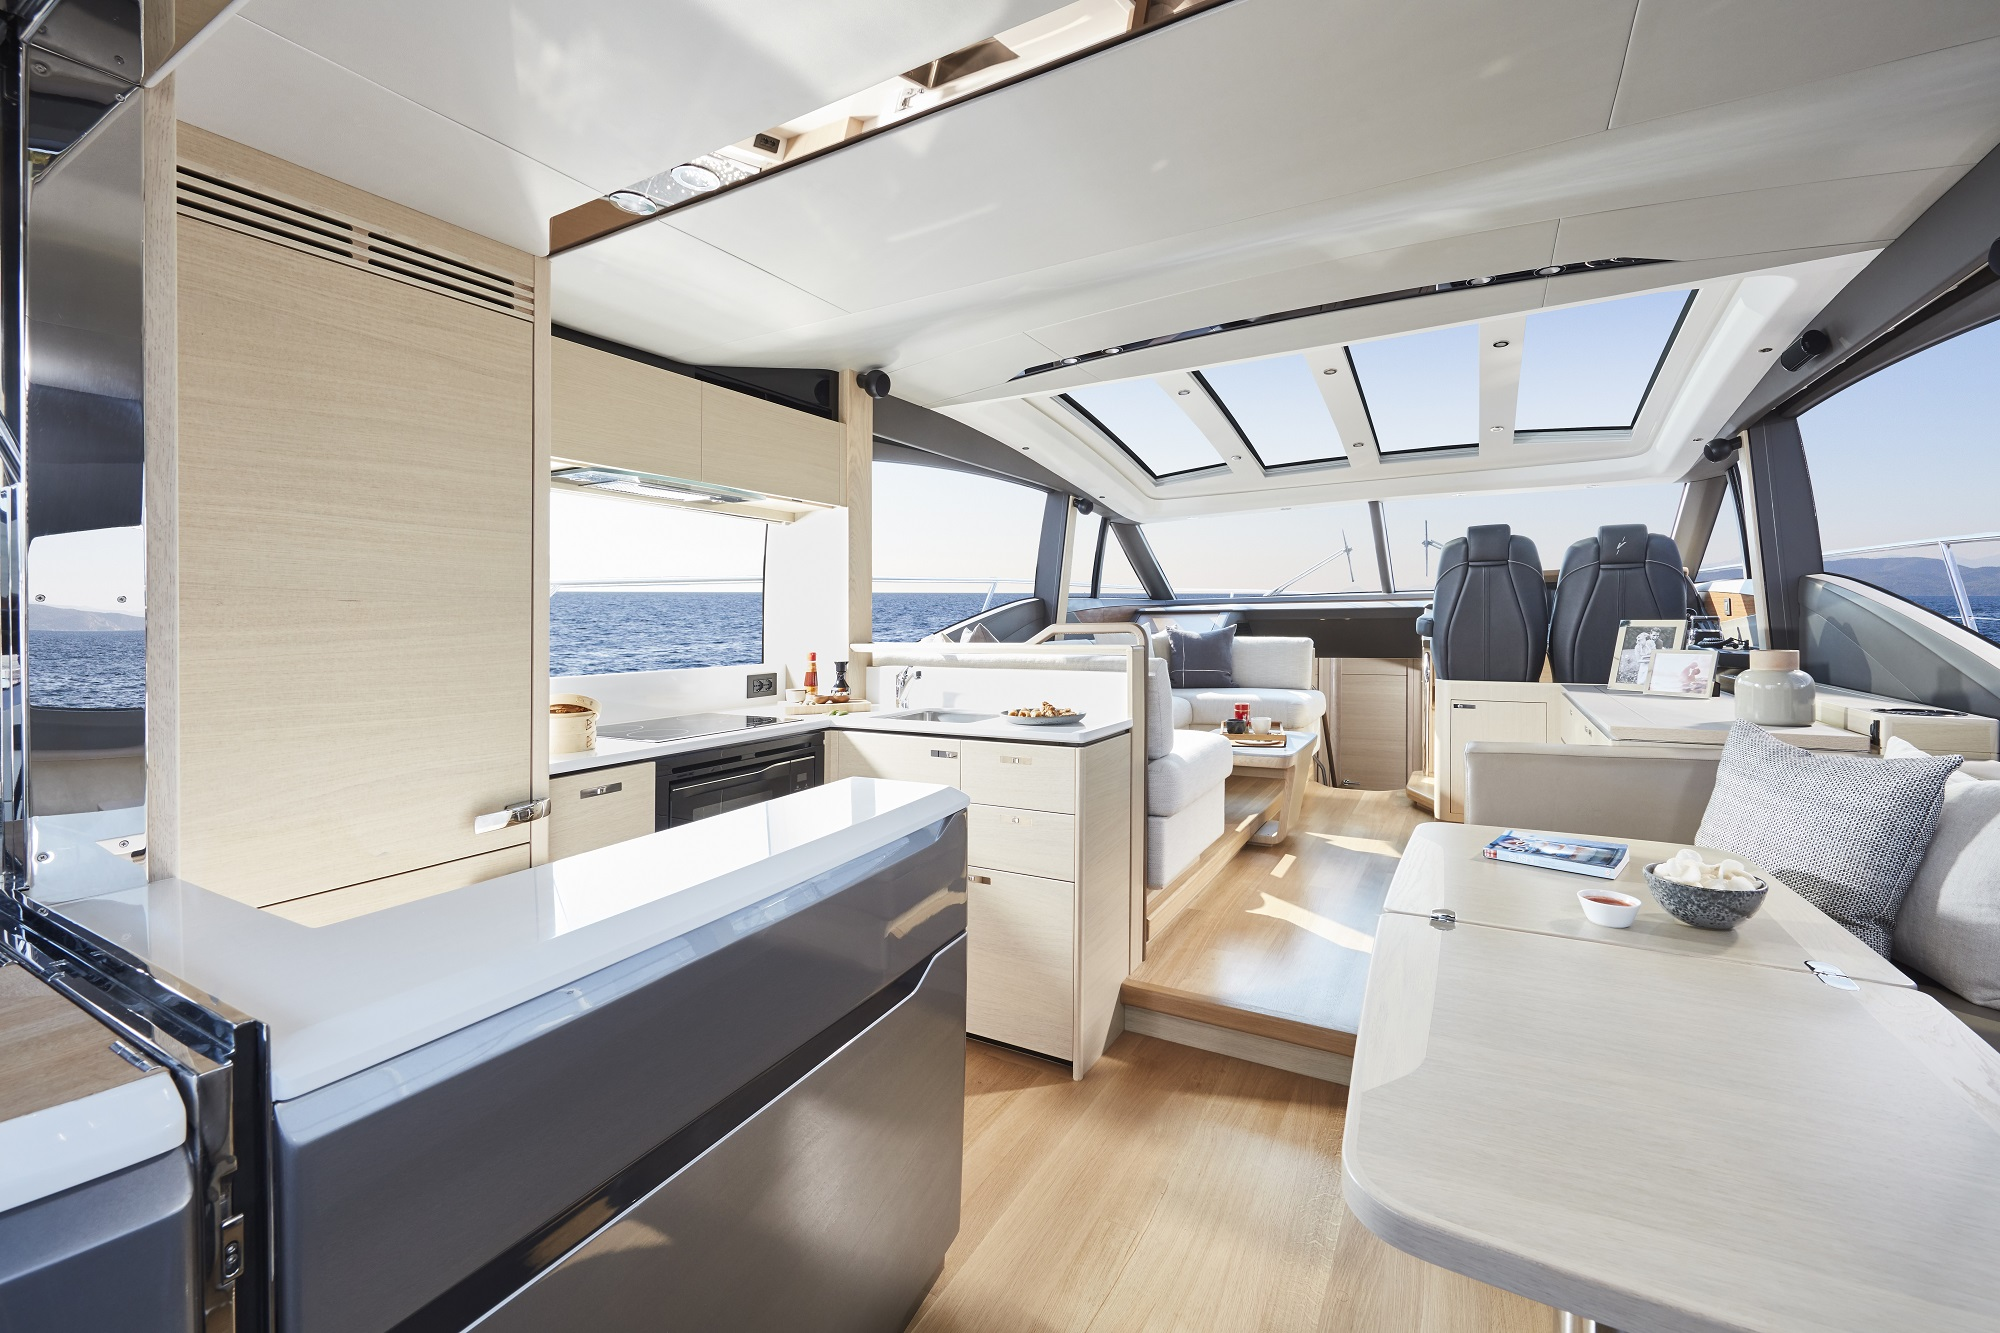 Cannes Boat Show: Silent-Yachts' catamaran Silent 55 makes